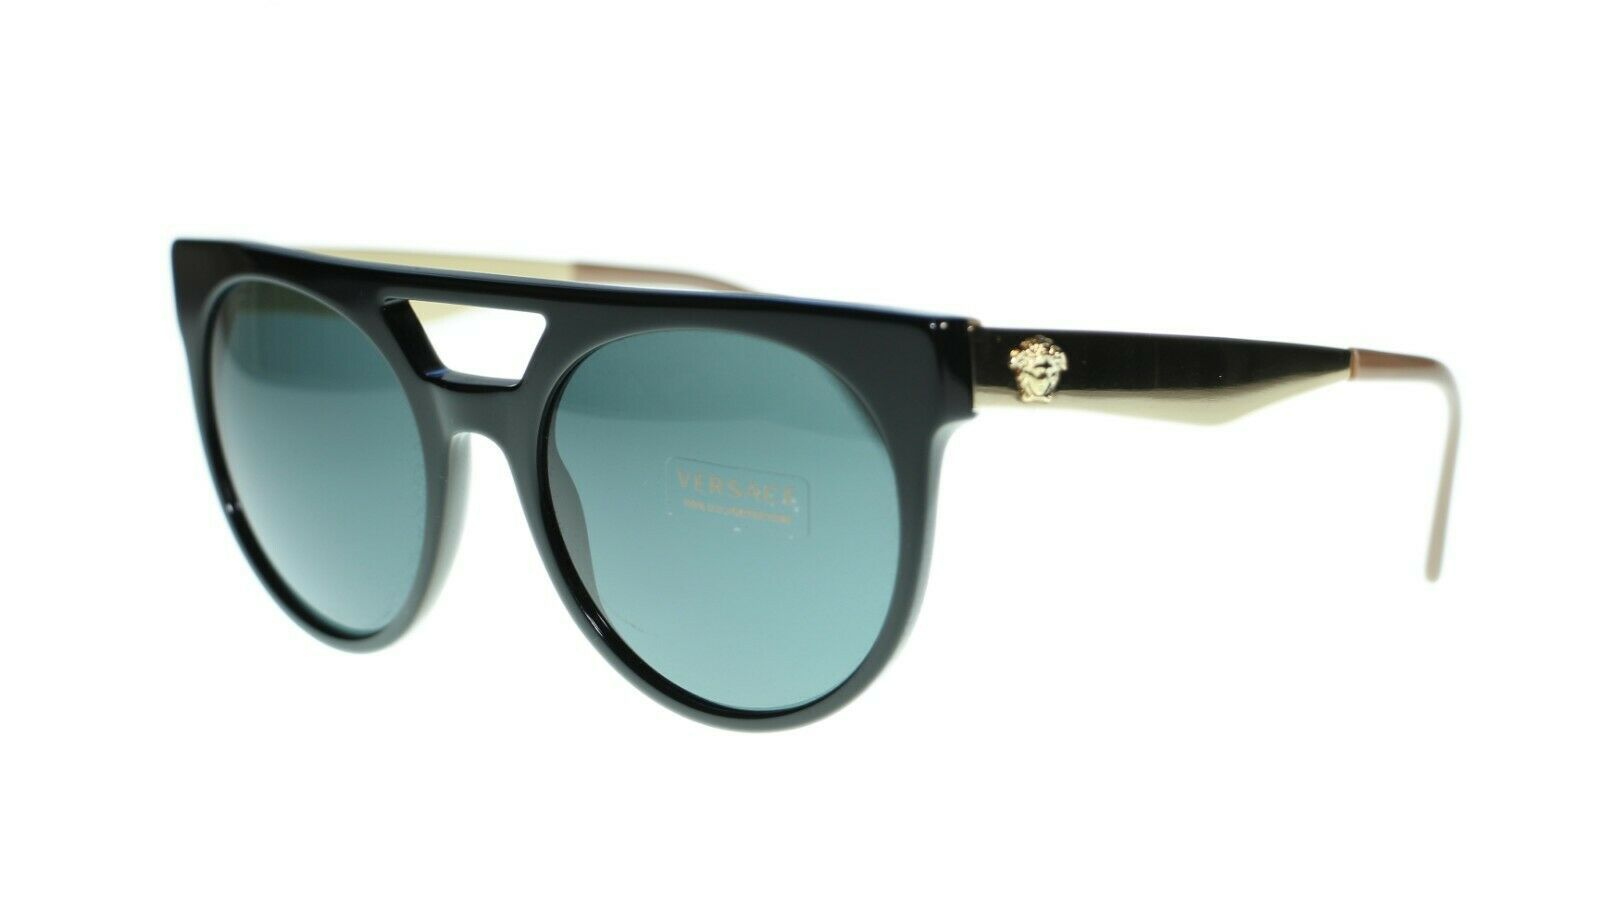 Versace Men's Round Sunglasses VE4339 Authentic 55mm